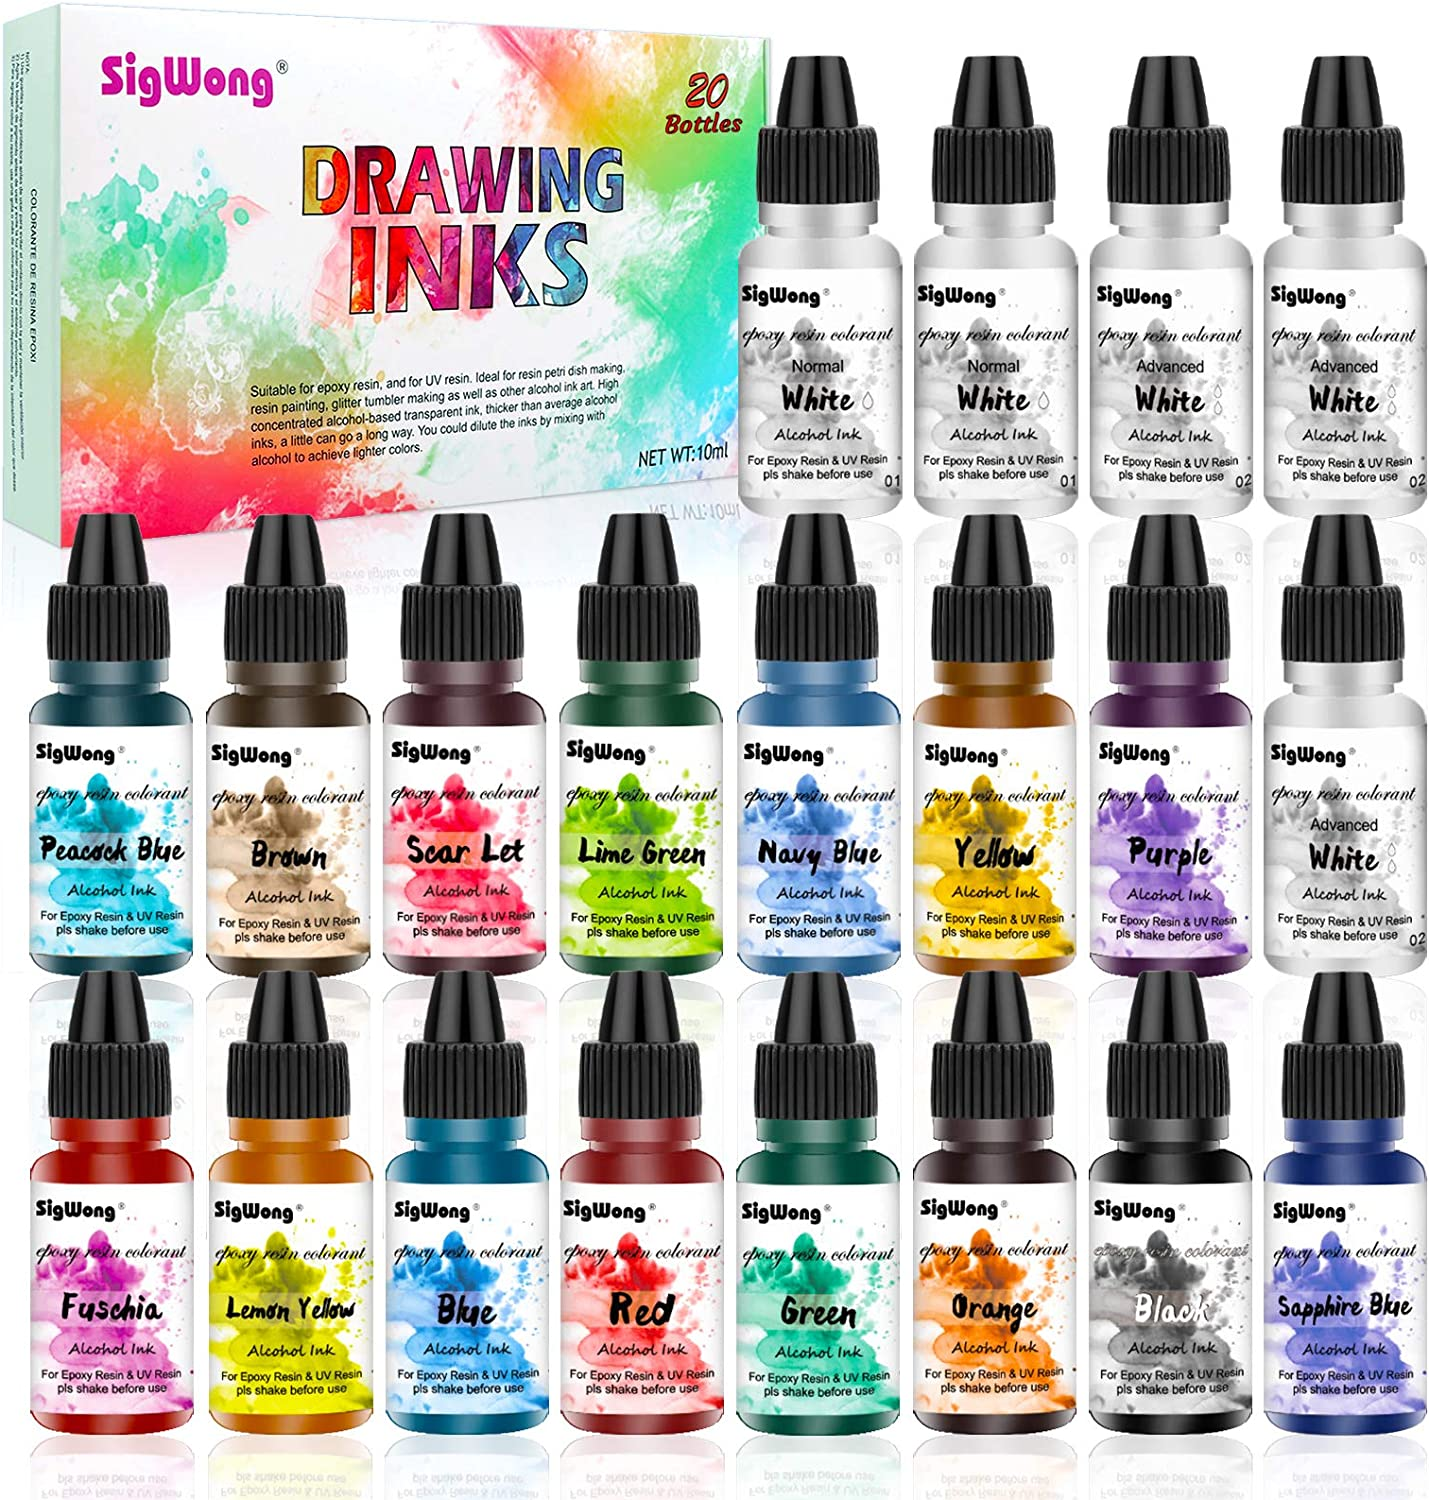 Alcohol Ink Set - 20 Bottles Vibrant Colors High Concentrated Alcohol-Based Ink, Concentrated Epoxy Resin Paint Colour Dye Great for Resin Petri Dish, Coaster, Painting, Tumbler Cup Making(10ml Each)